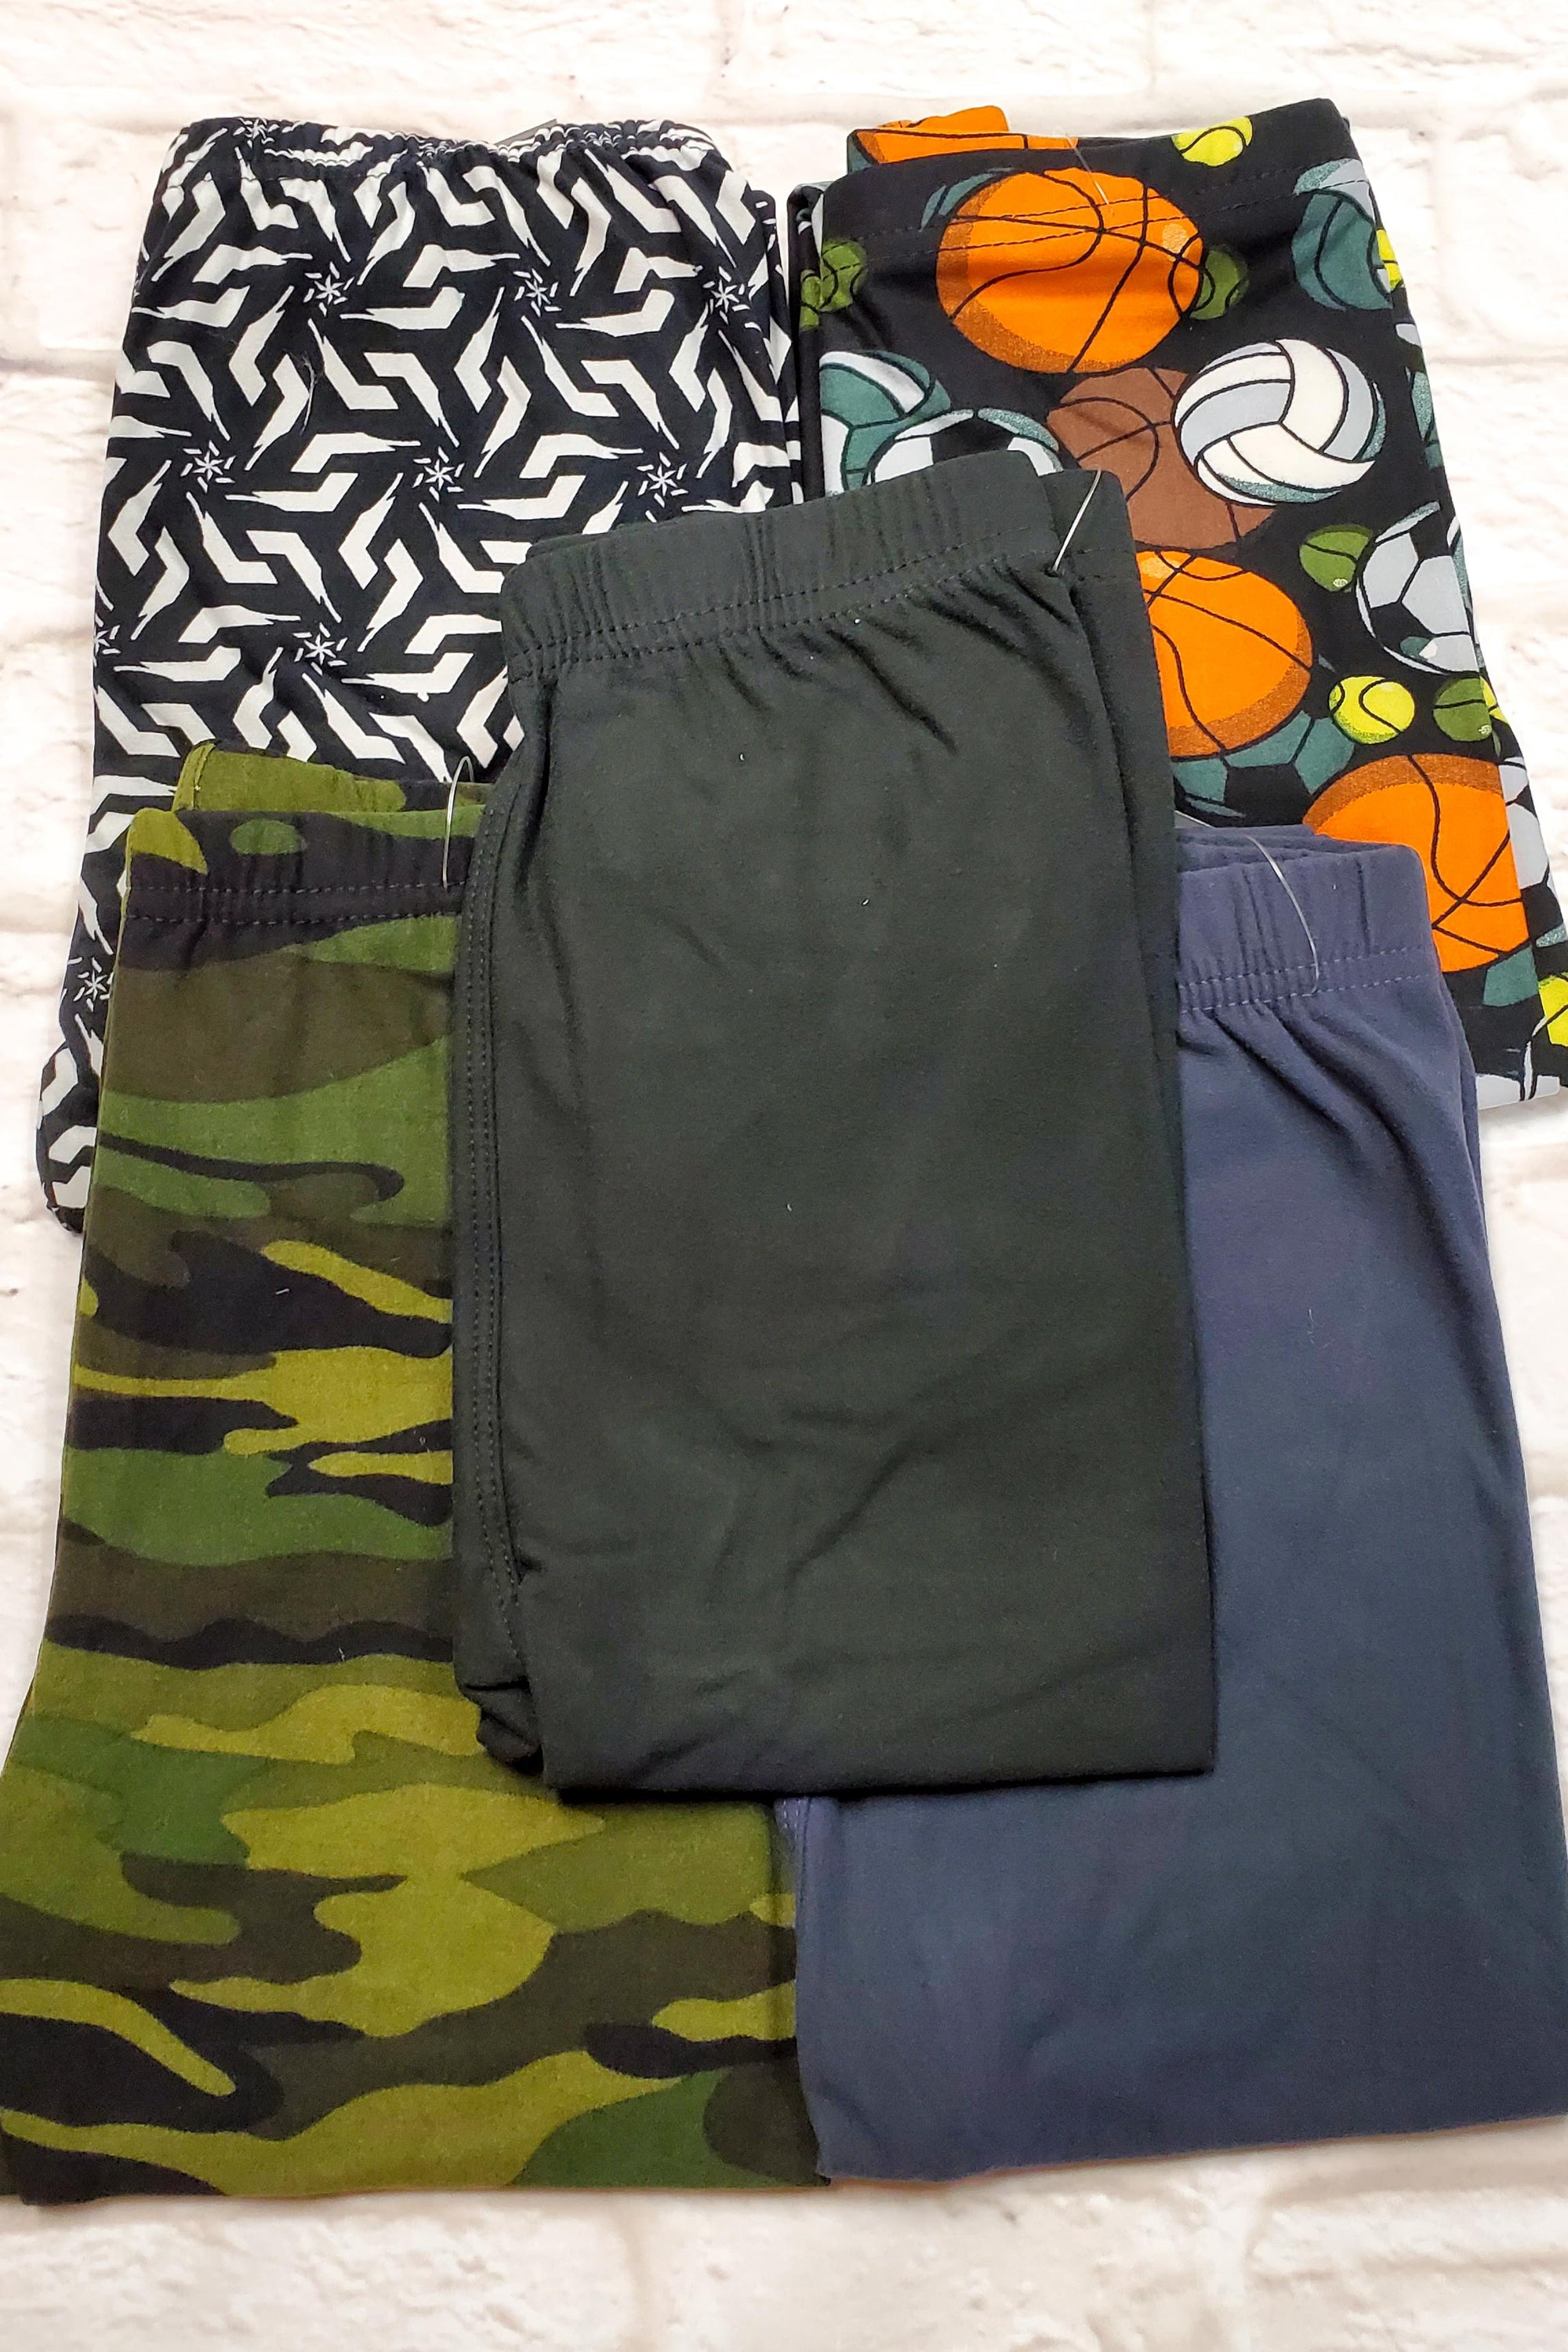 KIDS LEGGINGS CLEARANCE 5pk BUNDLE M Small (as pictured)